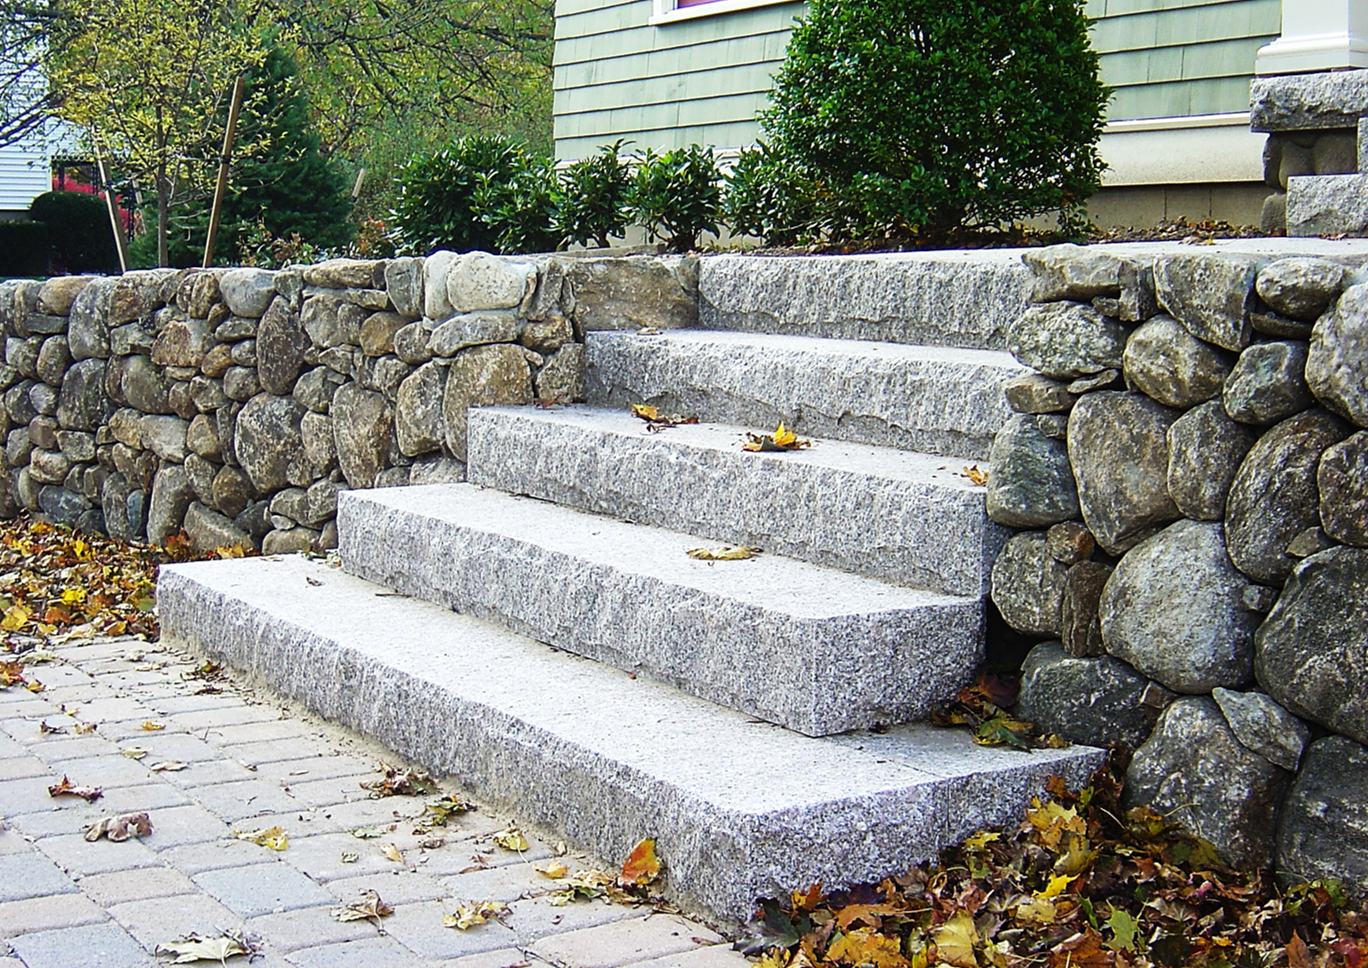 granite steps, Residential, Stone steps, Custom Stone fabrication, Gleason Ineson Stone Suppliers, G.I. Stone, GI Stone, New Hampshire stone, Massachusetts stone, Maine stone, Connecticut stone, Rhode Island stone, Vermont stone, New Hampshire granite, Massachusetts granite, Maine granite, Connecticut granite, Rhode Island granite, Vermont granite, Granite, Custom granite, Granite step, Stone, Stone patios, Stone driveway, Stone walkway, Natural stone, Concrete pavers, Building stone, Stone veneer, Wall stone, Veneer, Thin stone veneer, Retaining walls, Blue stone, Clay brick , Granite benches, Granite mantel, Granite post, Granite mailbox, Granite light post, Cobble stone, Cobbles, Granite edging, Granite hearths, Granite treads, Bluestone treads, Granite pavers, Pavers, River rock, Veneer, Natural stone flagging, New England field stone, Field stone, Round field stone, Granite pool coping, Bluestone pool coping, Outdoor stone fireplace, Stone fire pit, Indoor stone fireplace, Stone hearth, Granite hearth, Igneous rock, Concrete sand, Stone dust, ¾ crushed stone, 1 ½ crushed stone, Screened loam, Bark mulch Merrimack NH, Bark mulch Nashua NH, Bark mulch Bedford NH, Bark mulch NH, drafting services, Custom Stone fabrication,